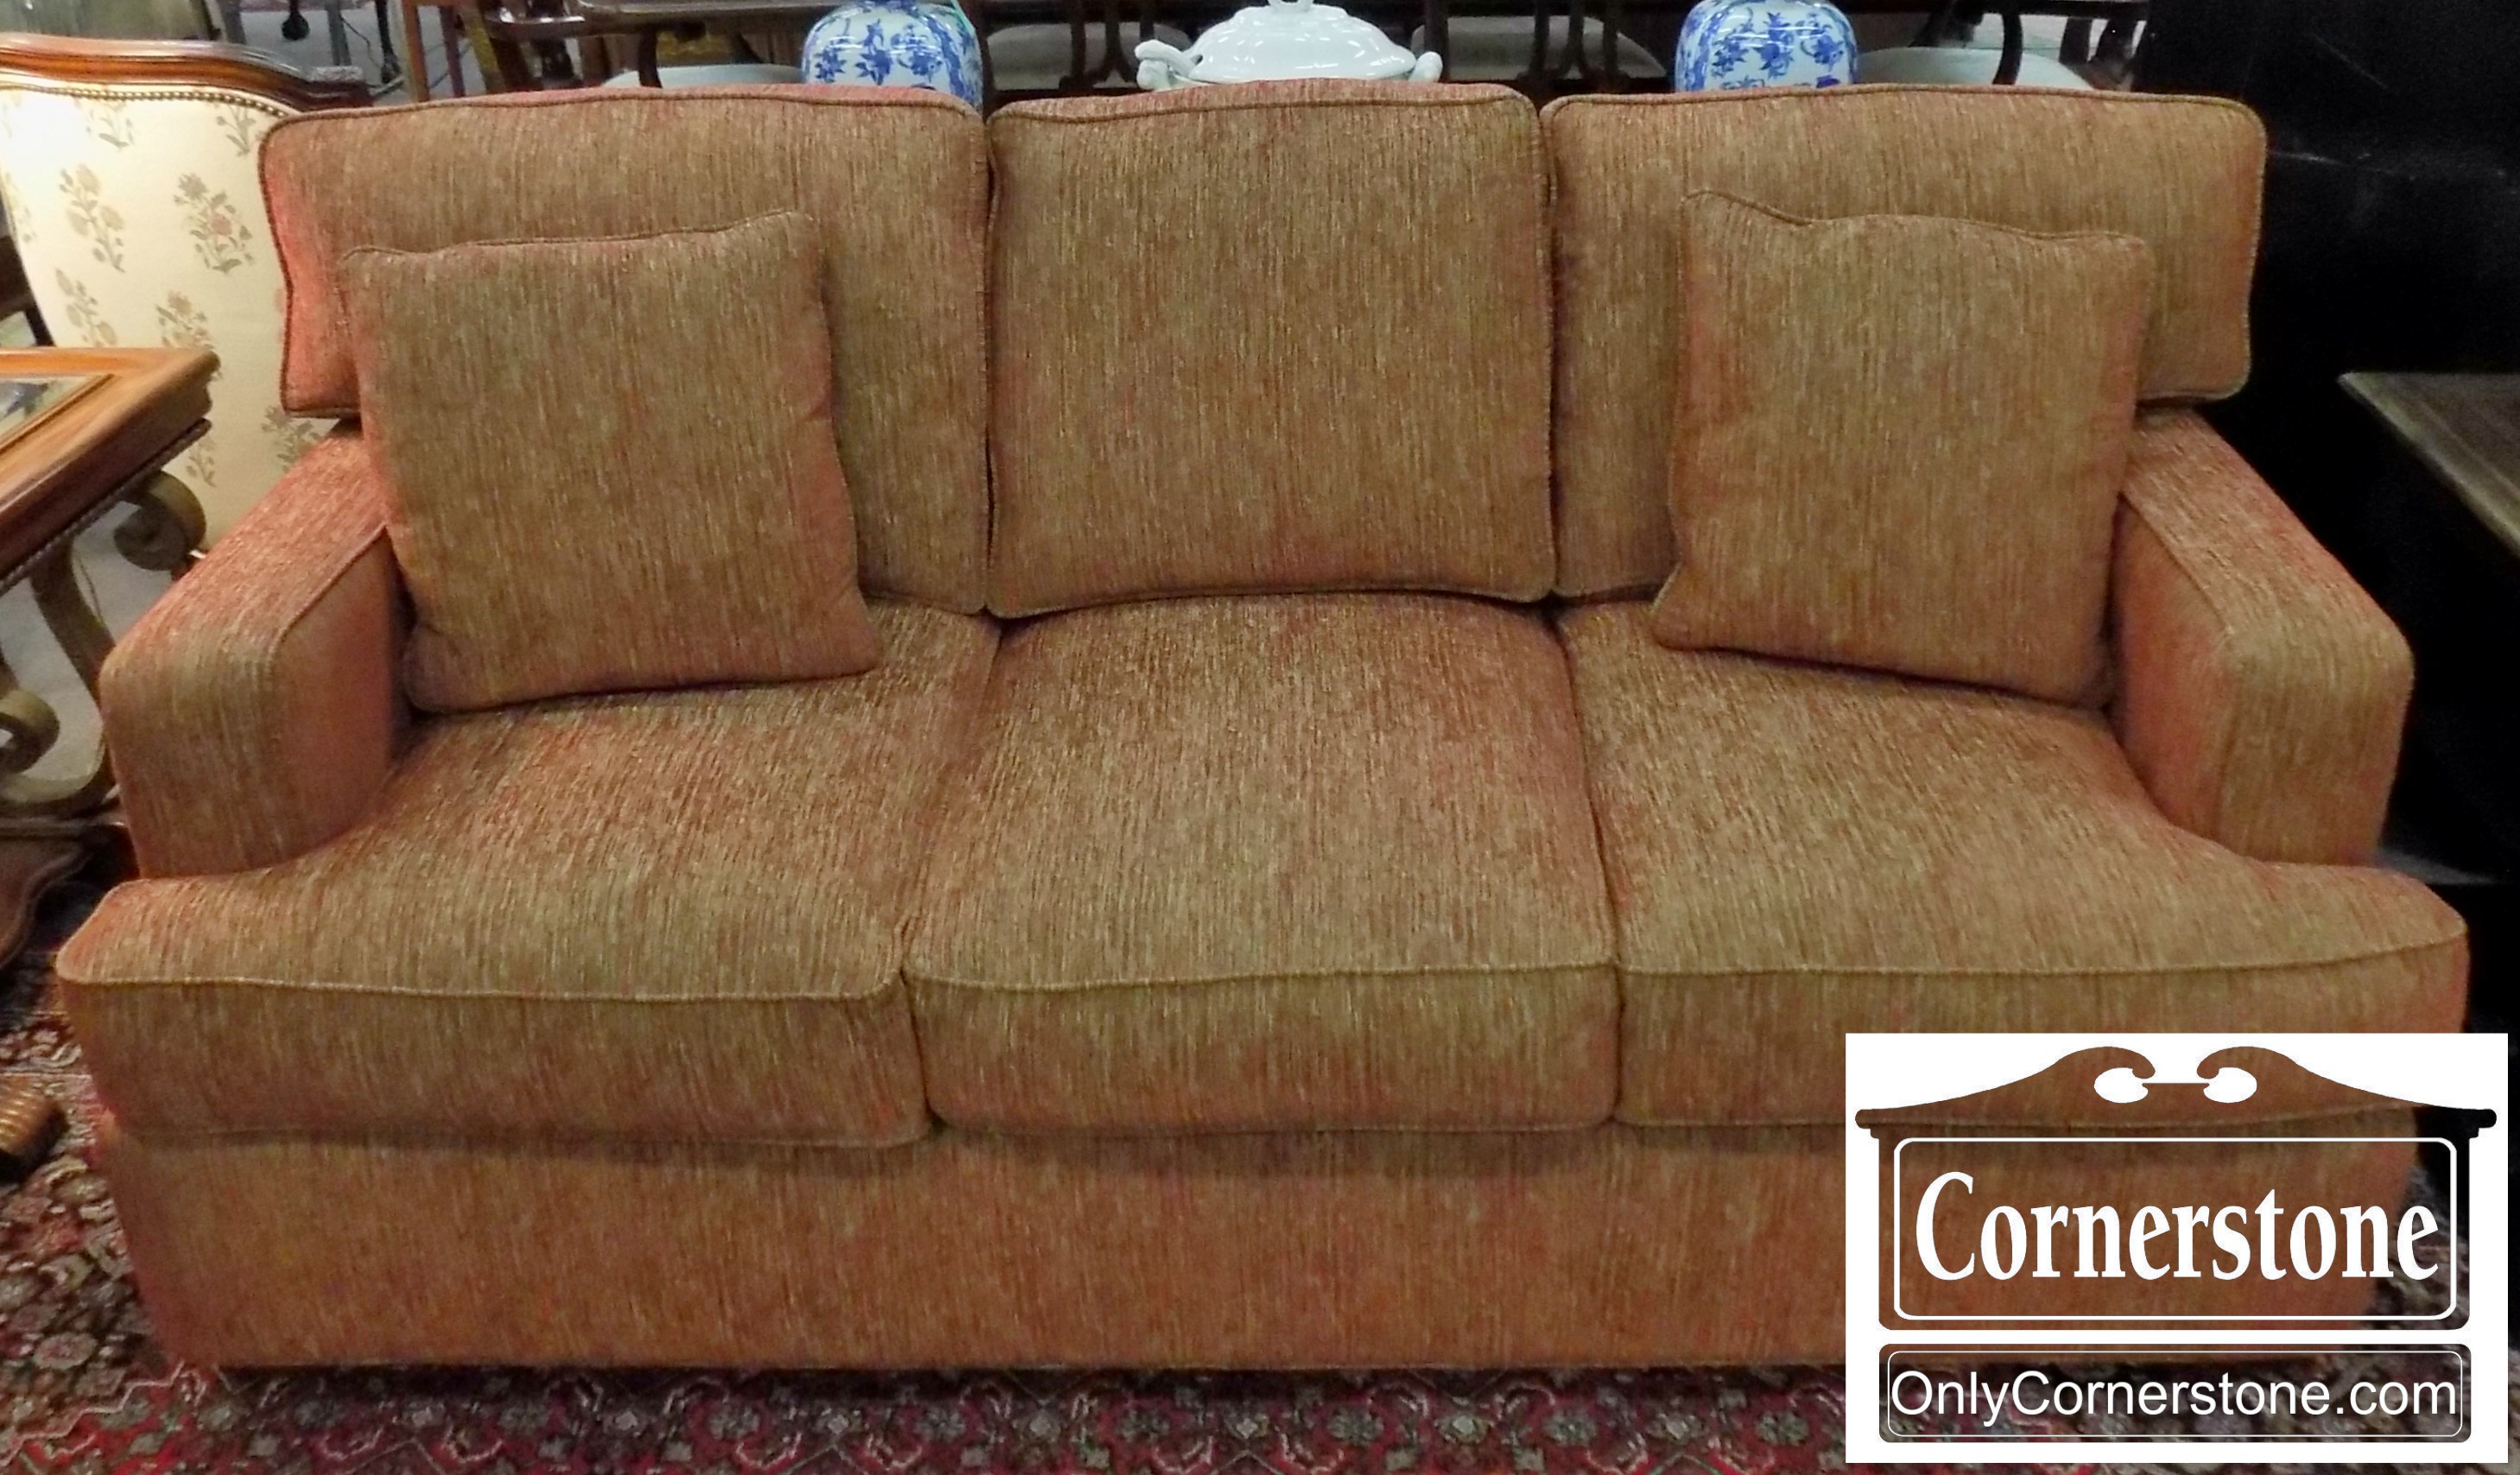 Fairfield Red With Sage Colored Upholstered Sofa | Baltimore, Maryland Furniture  Store U2013 Cornerstone